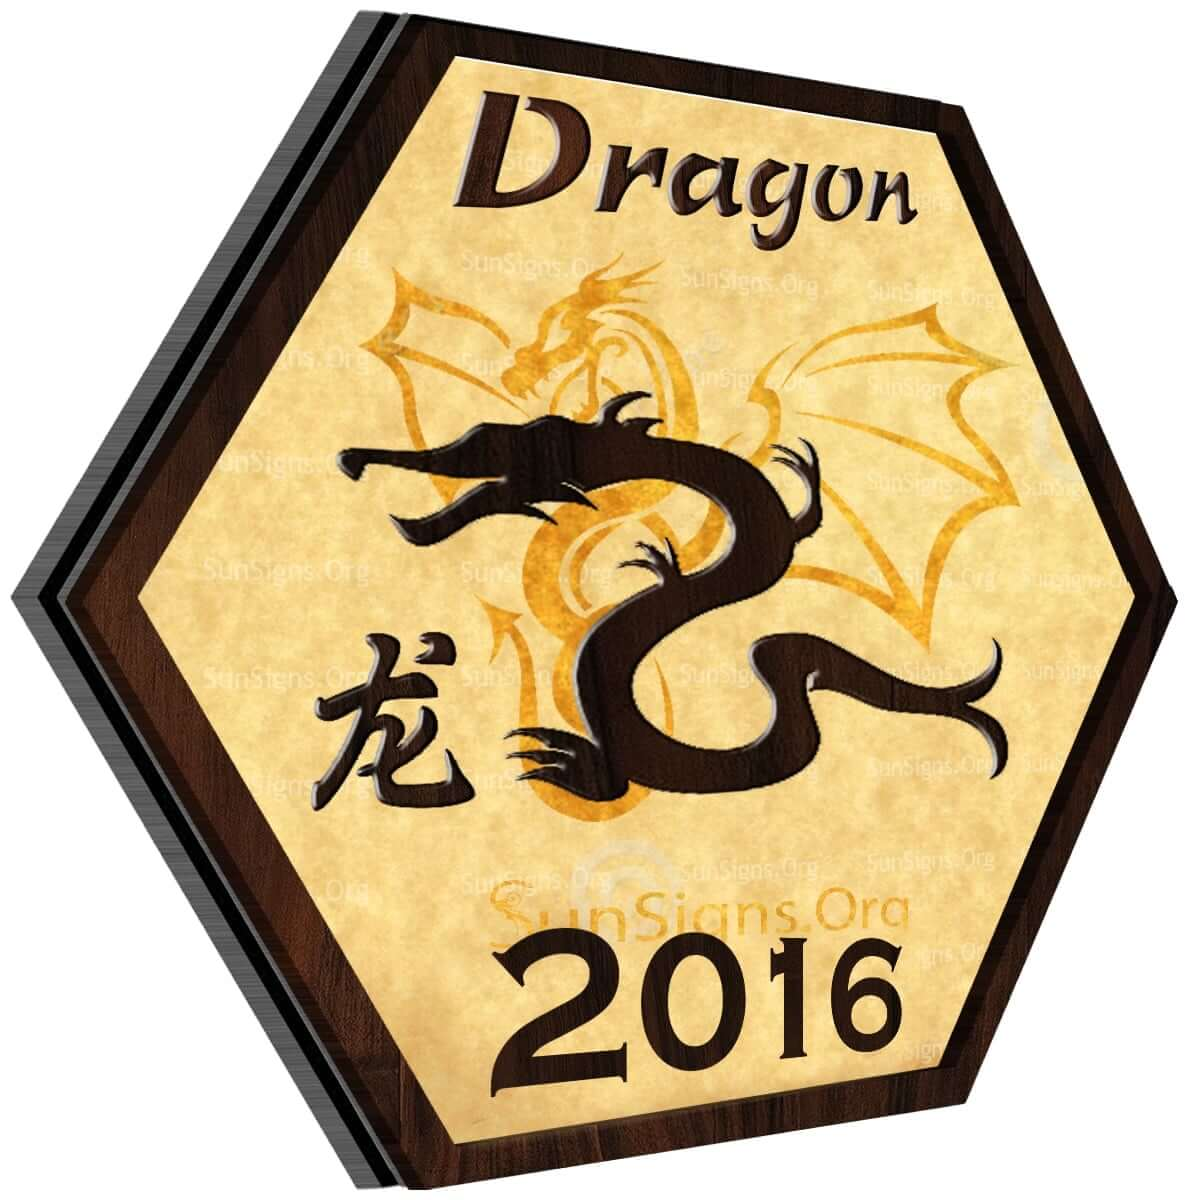 Dragon Horoscope 2016 Predictions For Love, Finance, Career, Health And Family